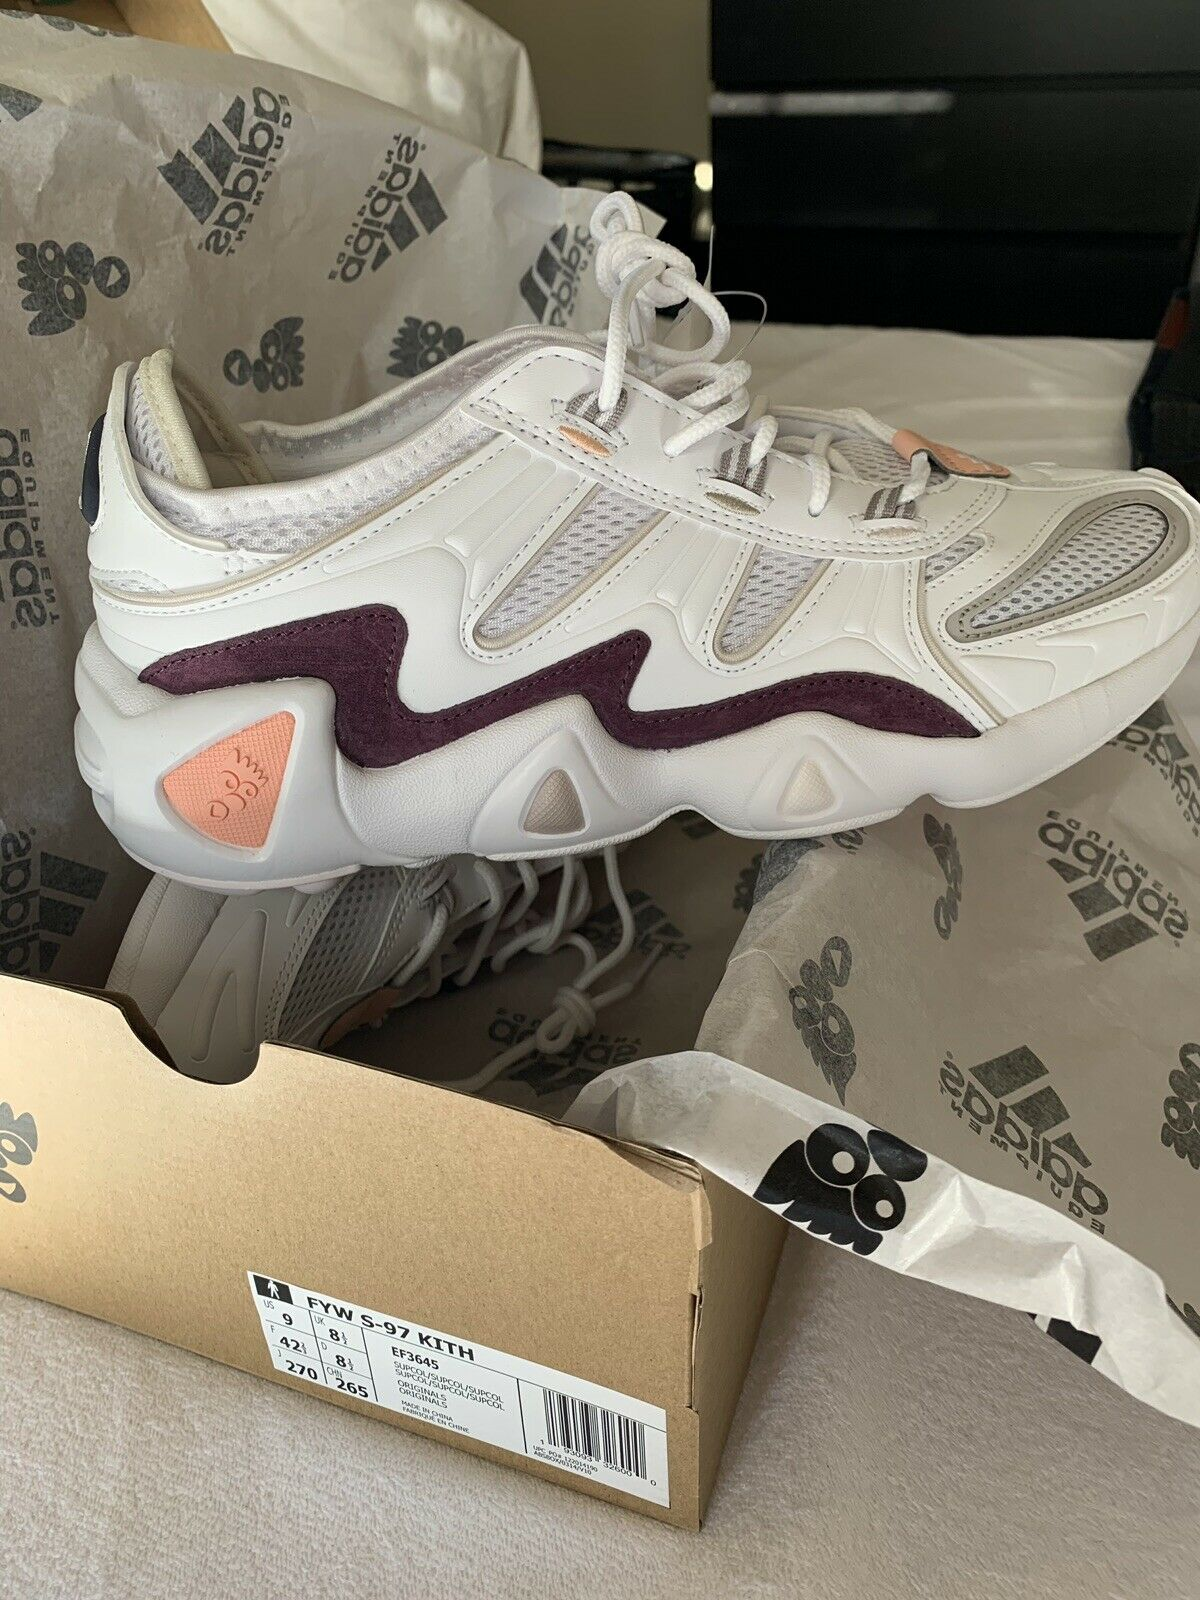 finest selection 76f5c 51416 Kith X Adidas FYW S-97 White Purple Pink Ronnie Fieg